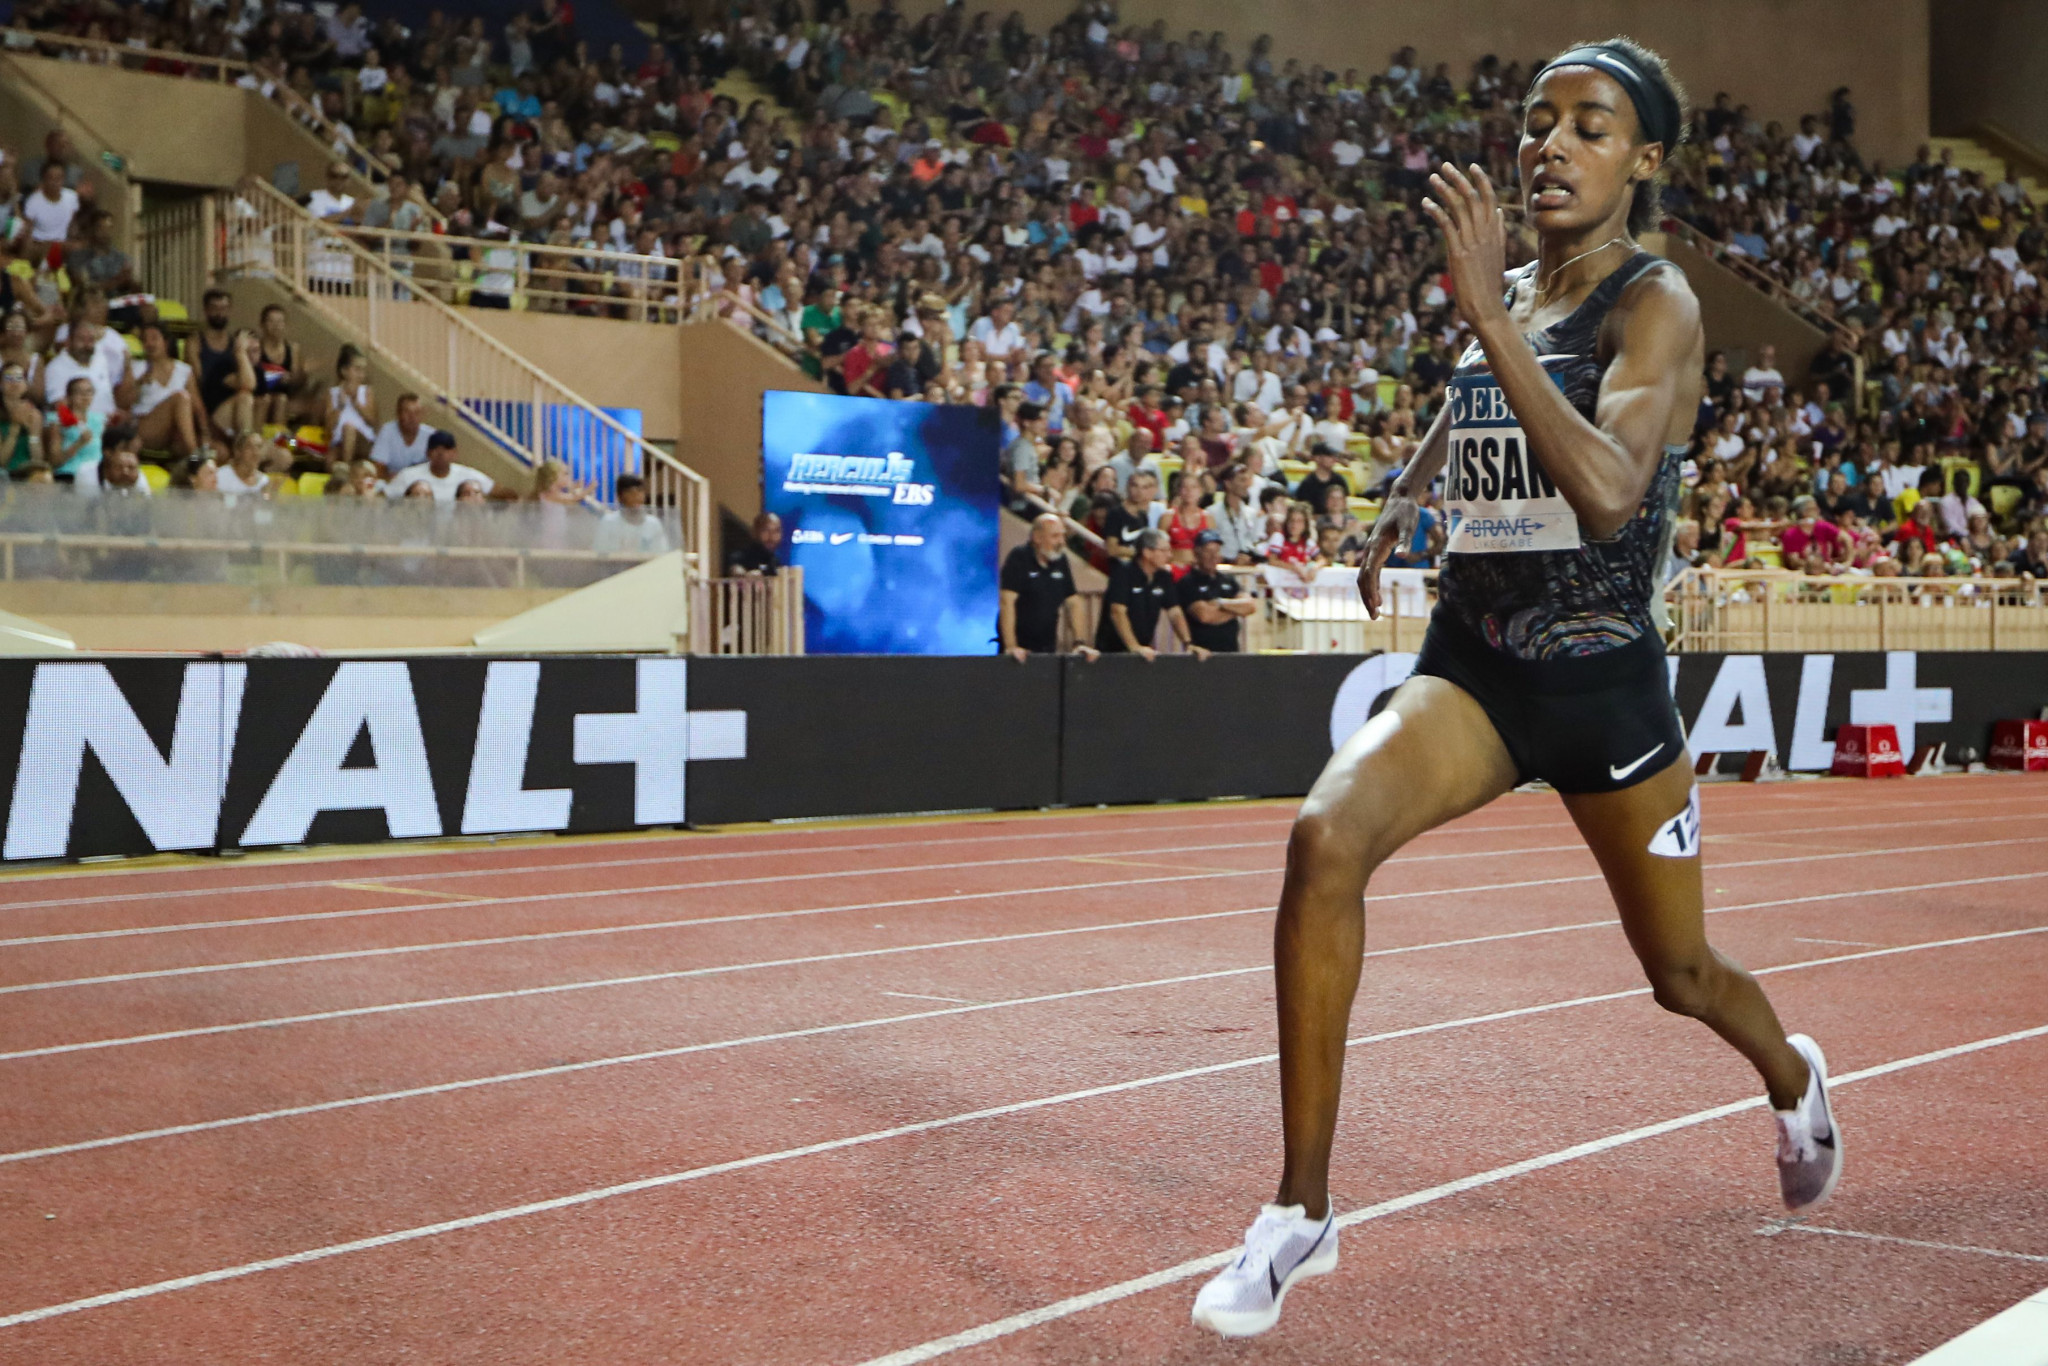 Hassan breaks women's mile world record at Monaco Diamond League meeting